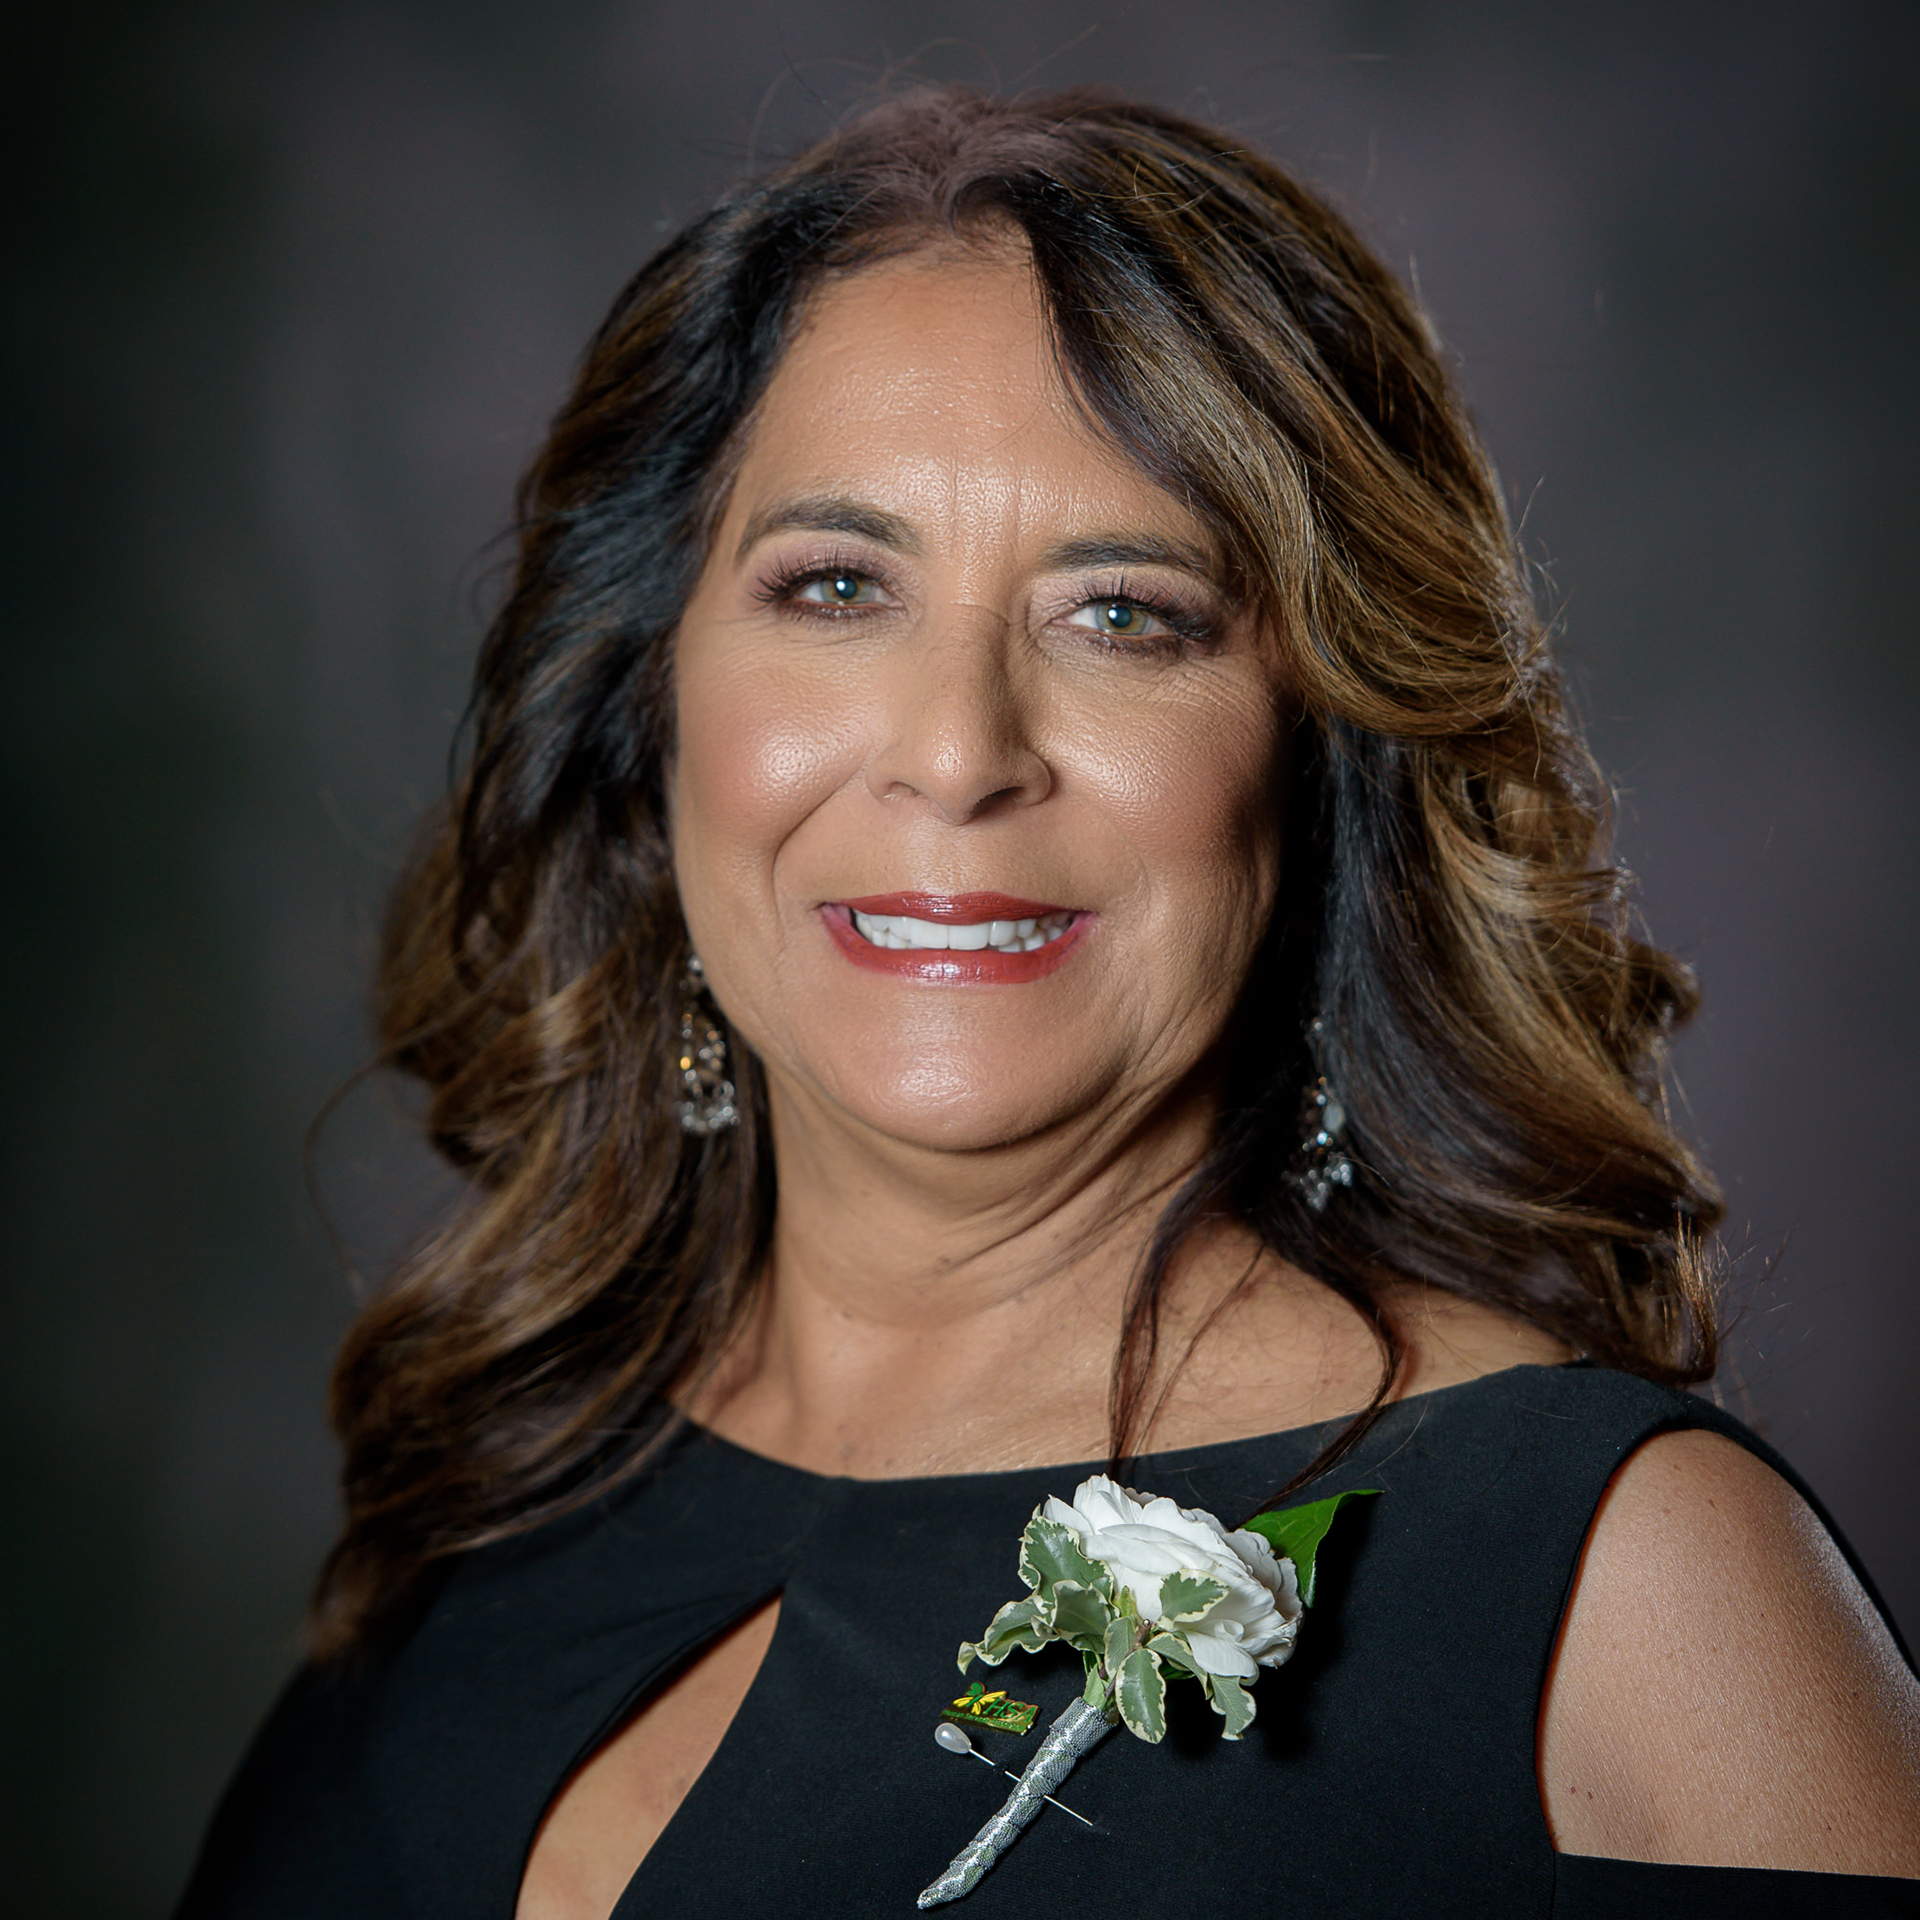 Human Services Association (HSA) Board of Directors Announces Retirement of Chief Executive Officer (CEO) Leticia Chacon